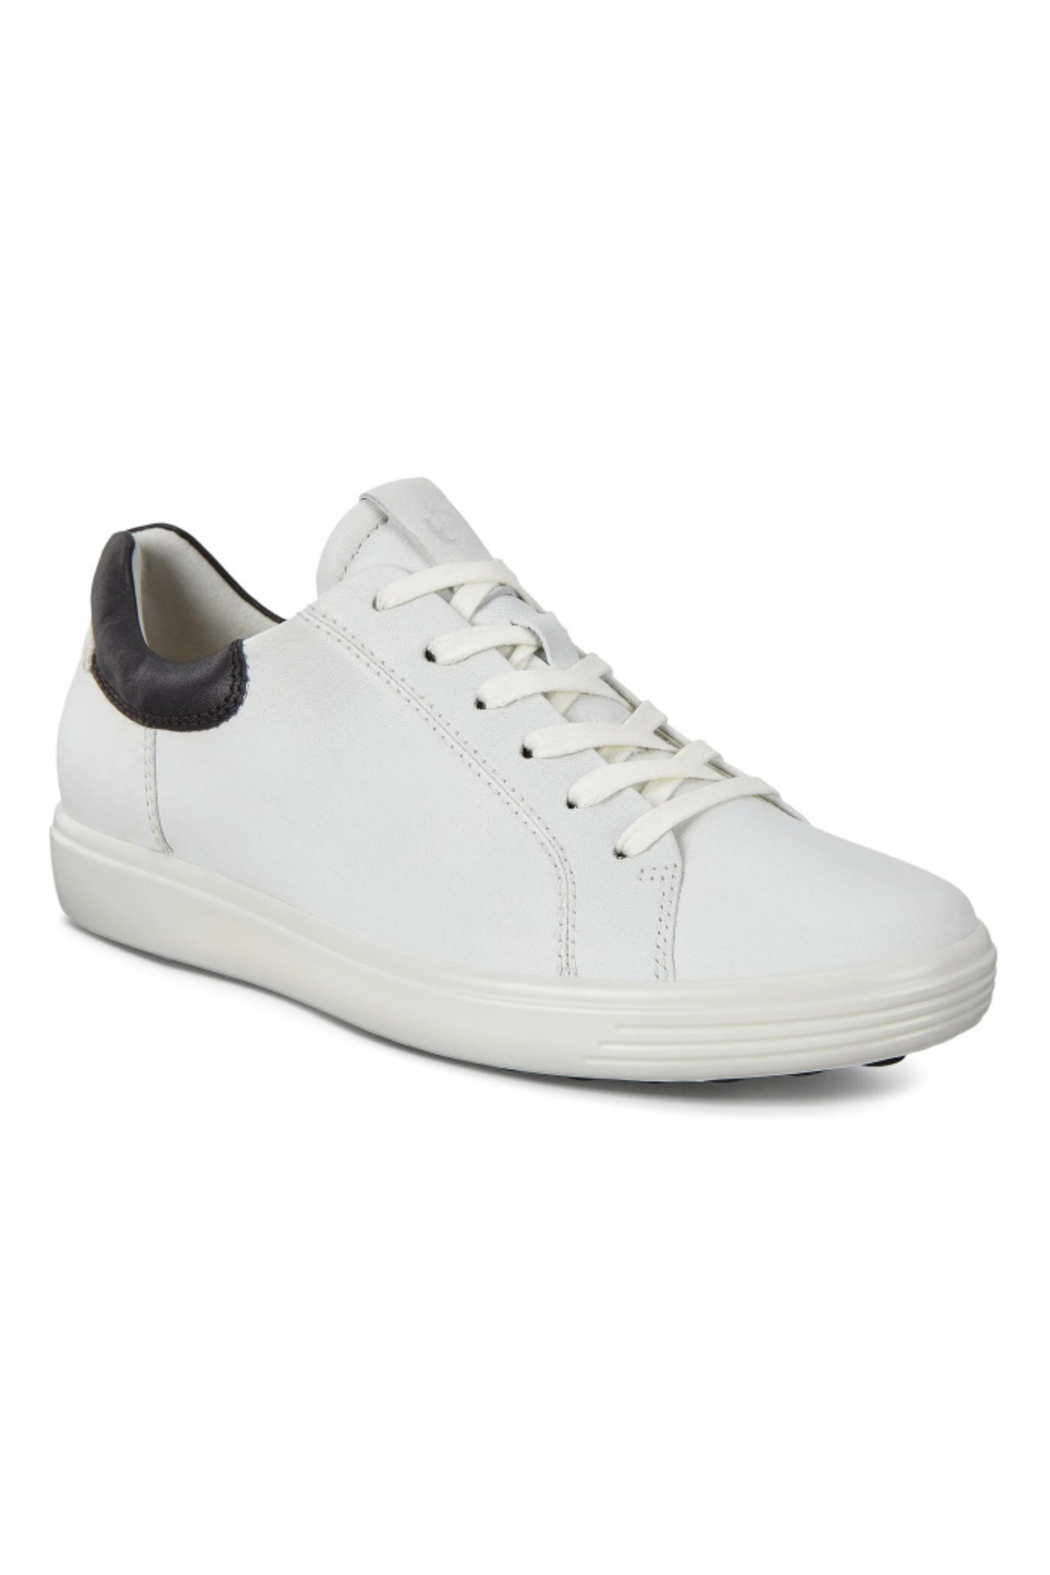 ECCO Ecco Women's Soft 7 Sneaker - Front Cropped Image